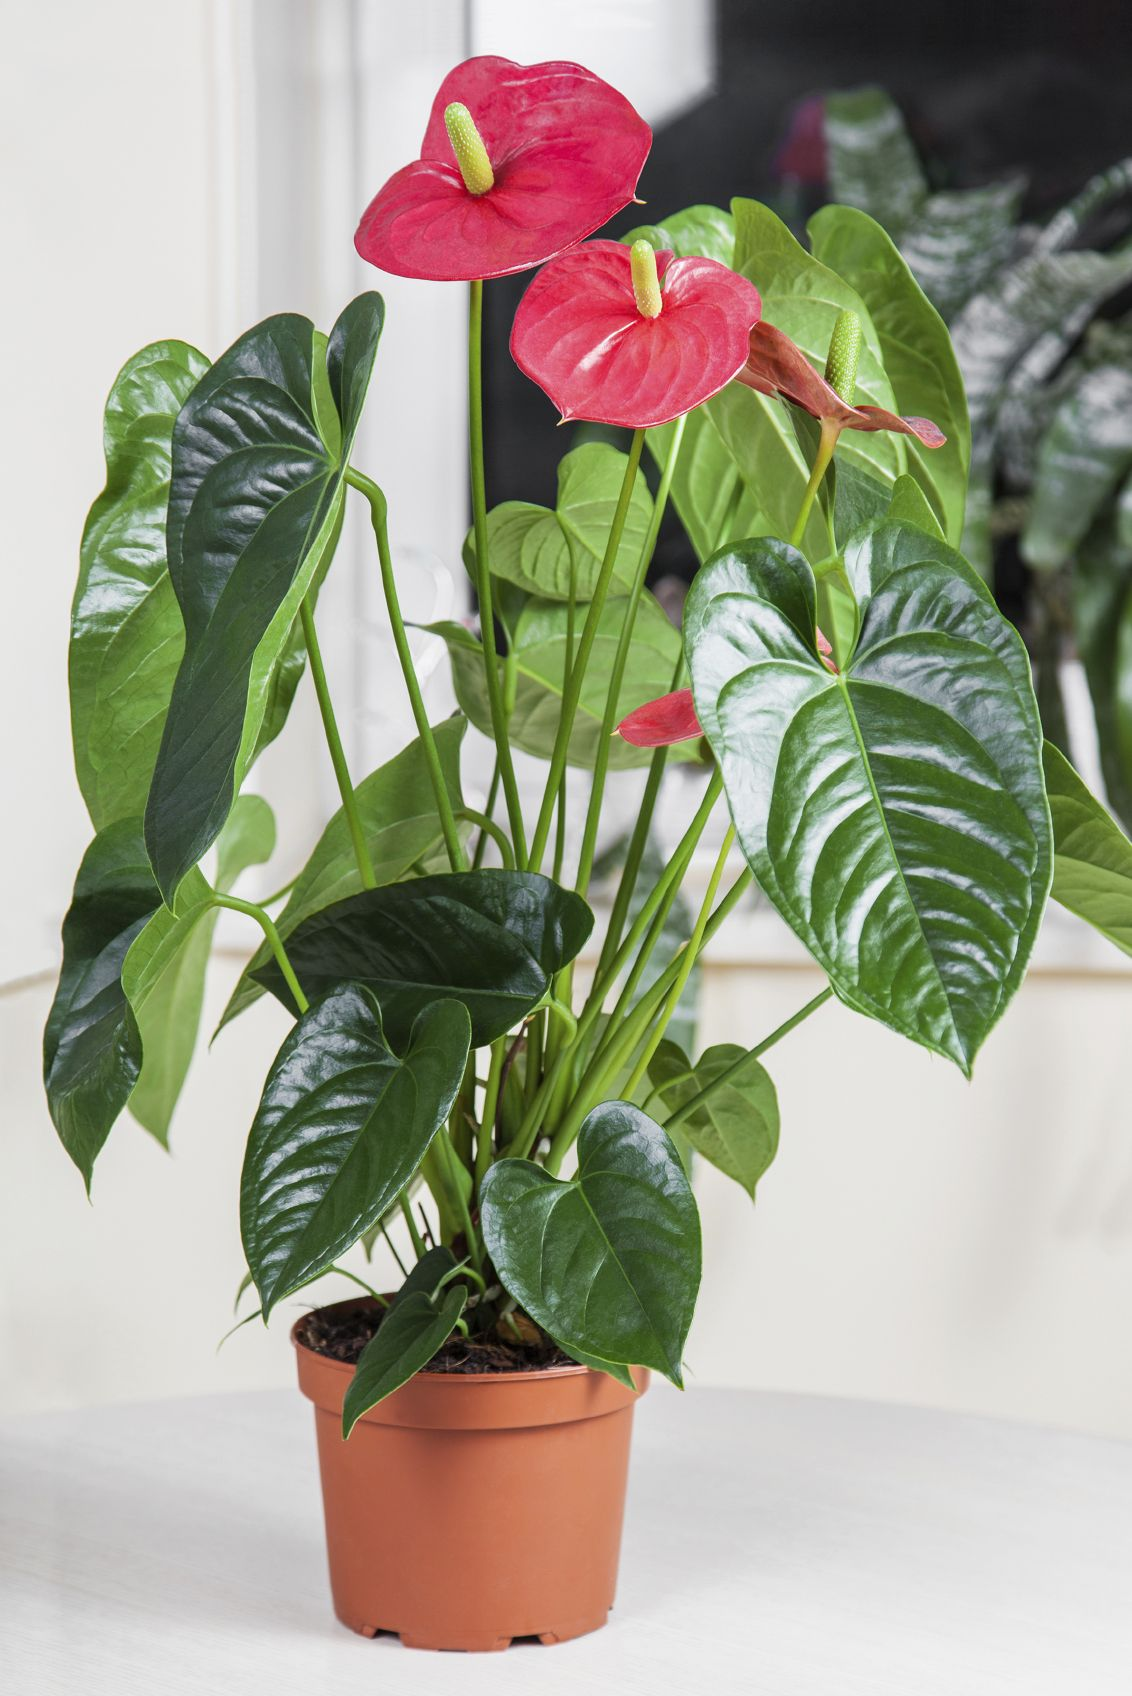 Anthurium Plant Care Learn About Repotting Anthuriums Anthurium Plant Common House Plants Air Purifying House Plants